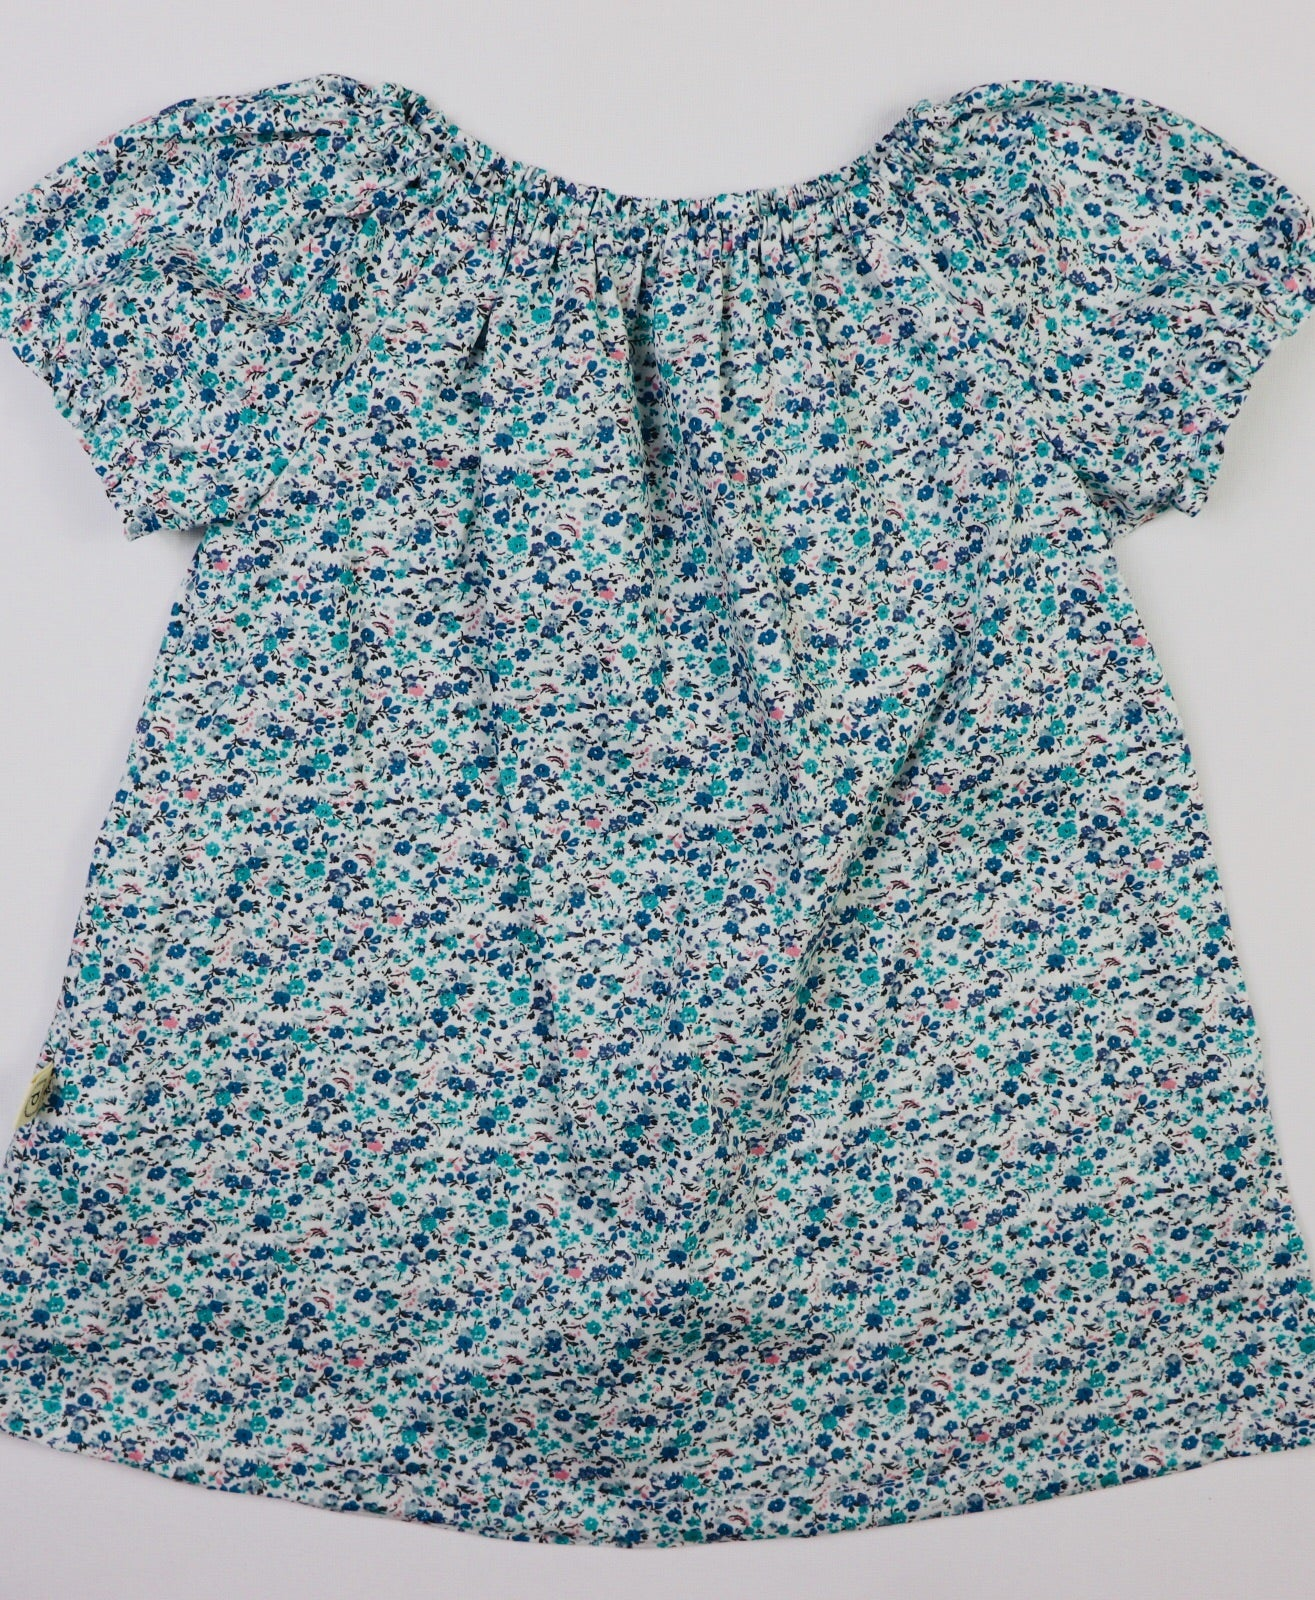 Poche Peasant Top/Short Sleeve - DITSY BLUE